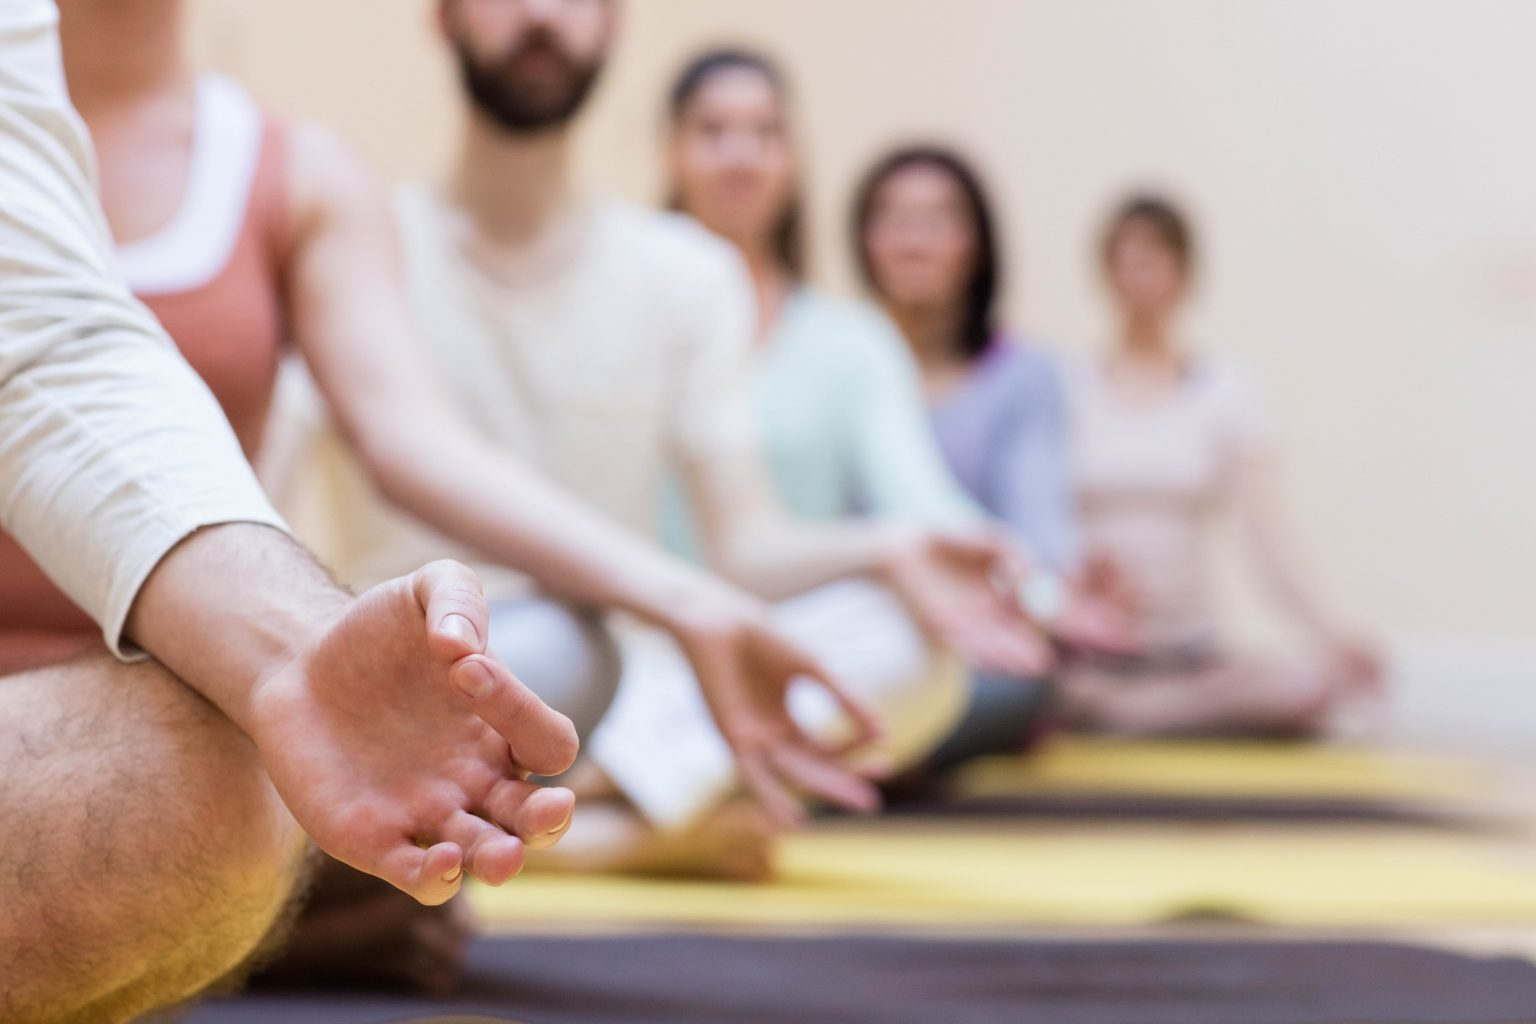 Group of people doing meditation on an exercise mat